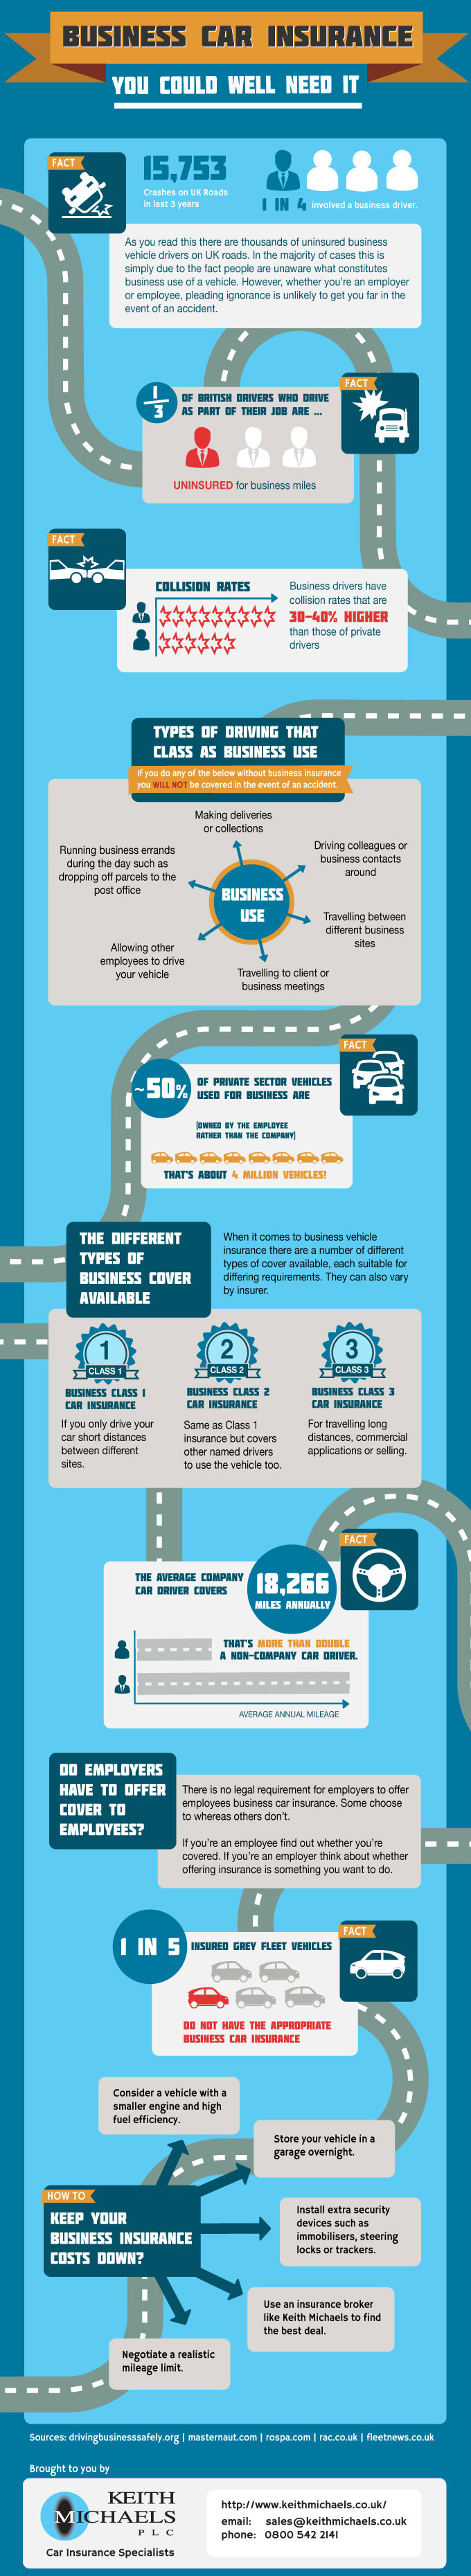 Business Car Insurance Infographic Infographic_small